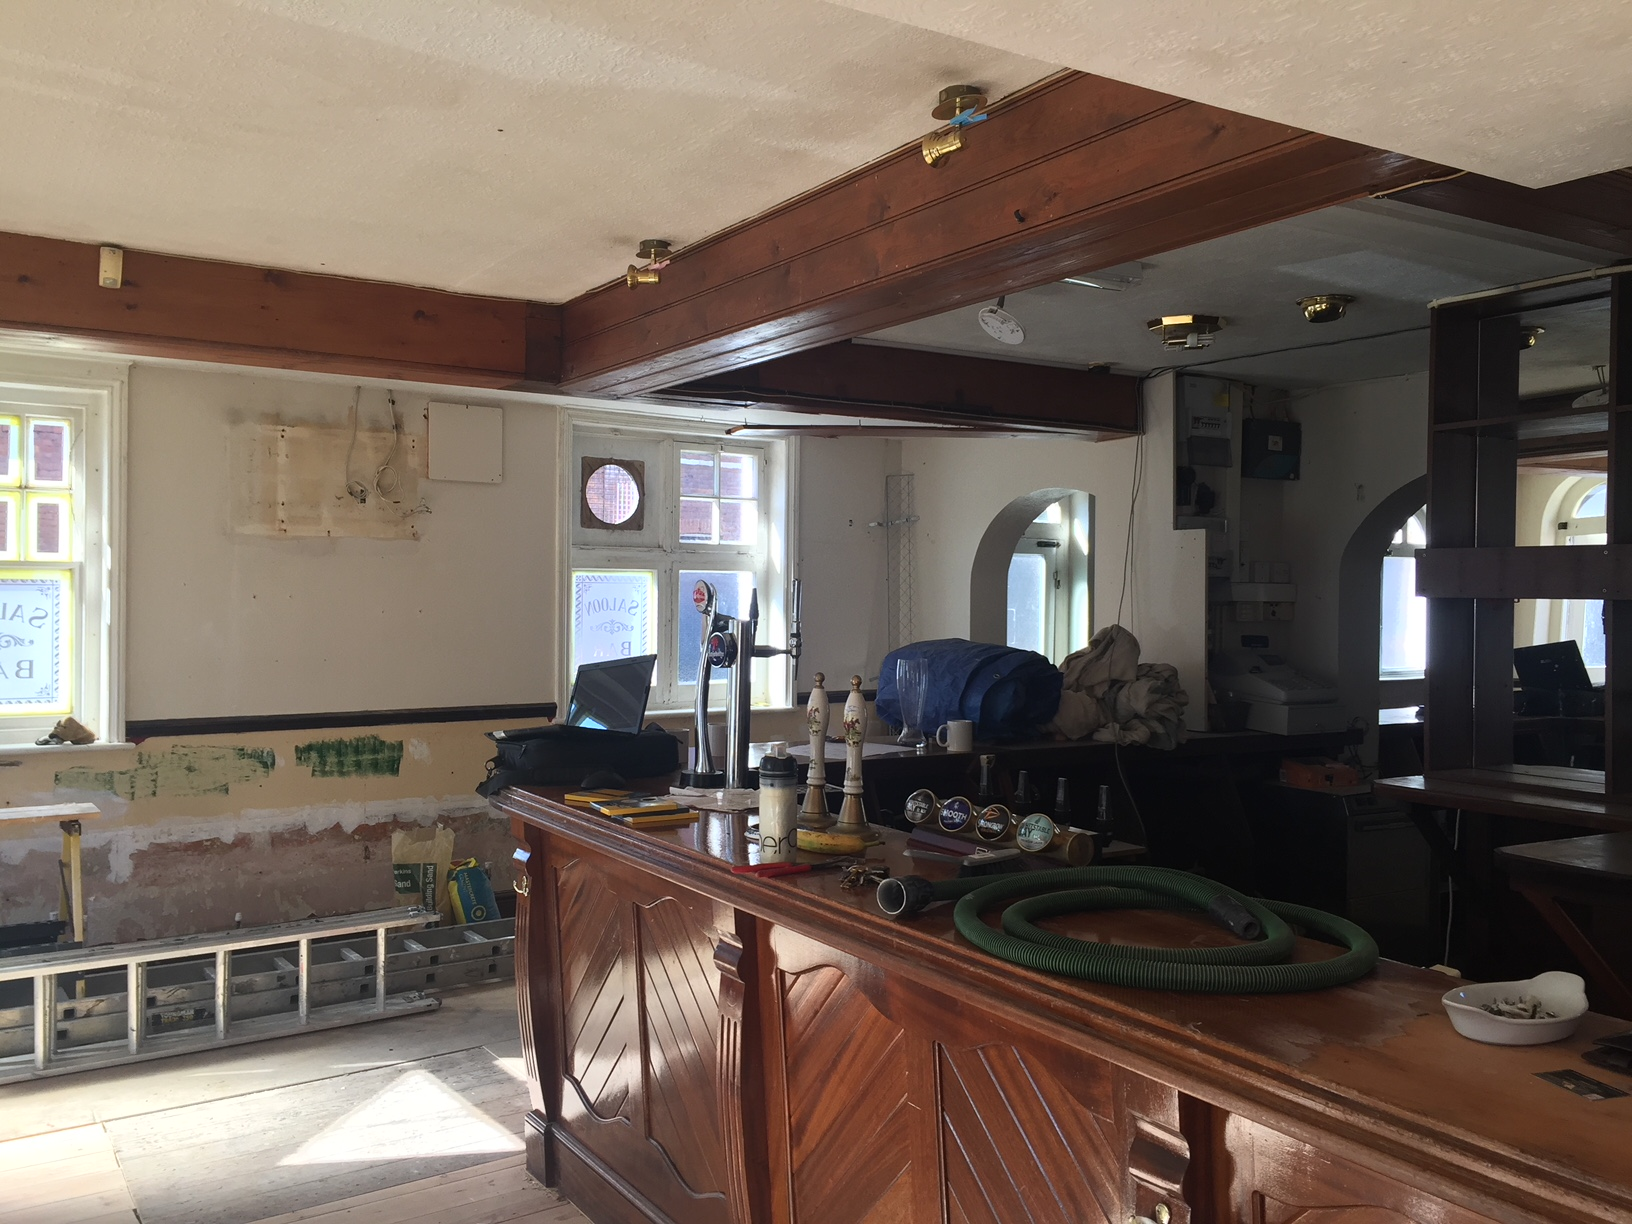 Interior view of the Nelson Arms prior to refurb